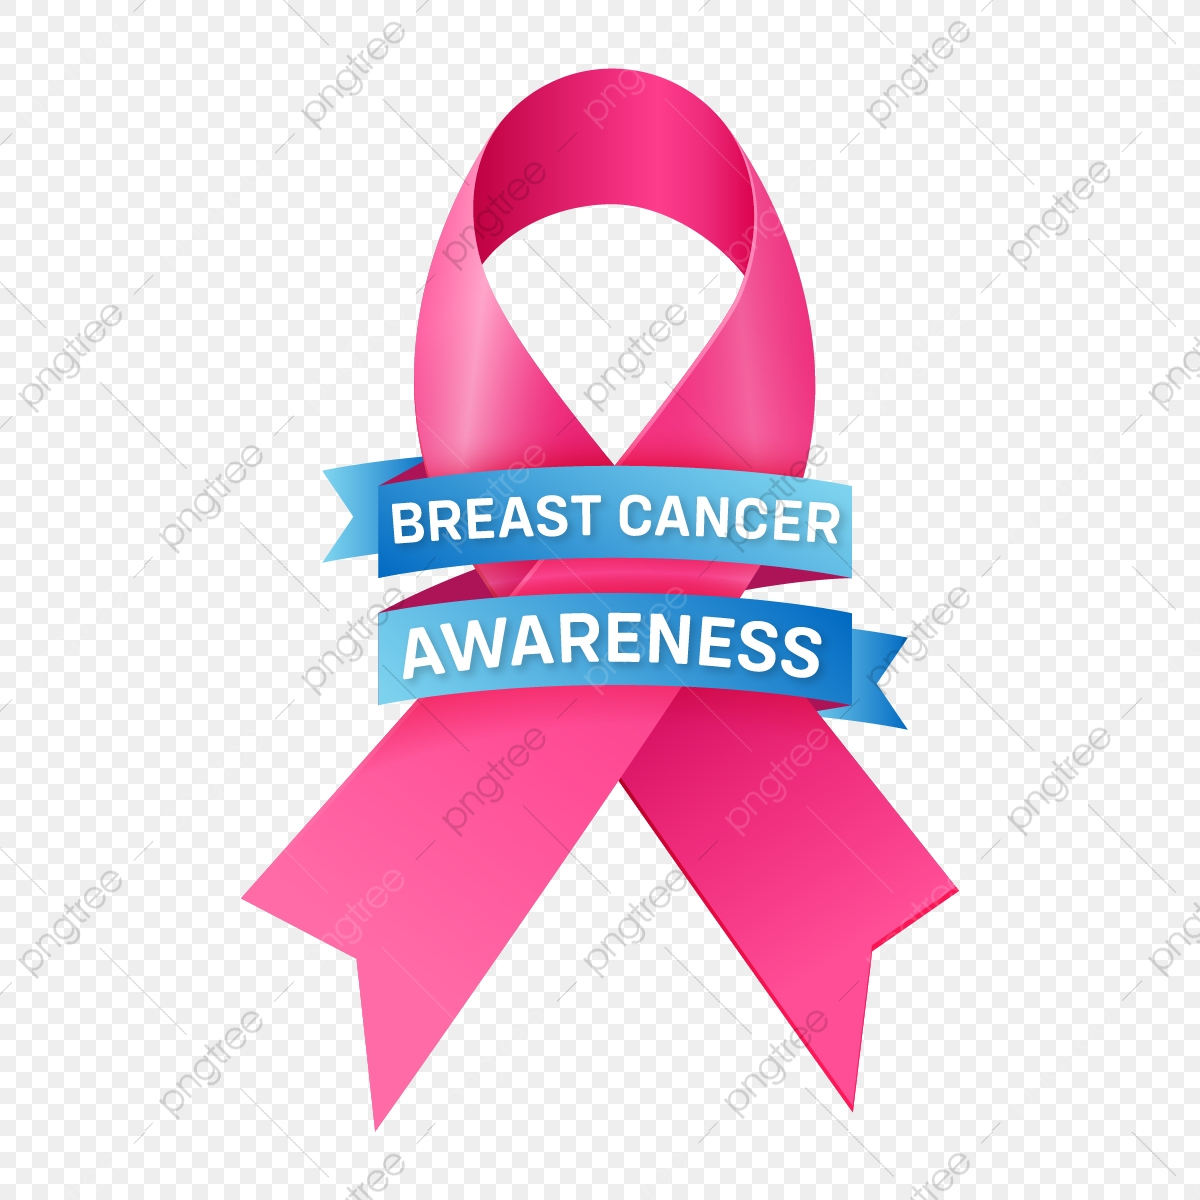 Breast Cancer Awareness Ribbon Background, Cancer, Breast, Ribbon.